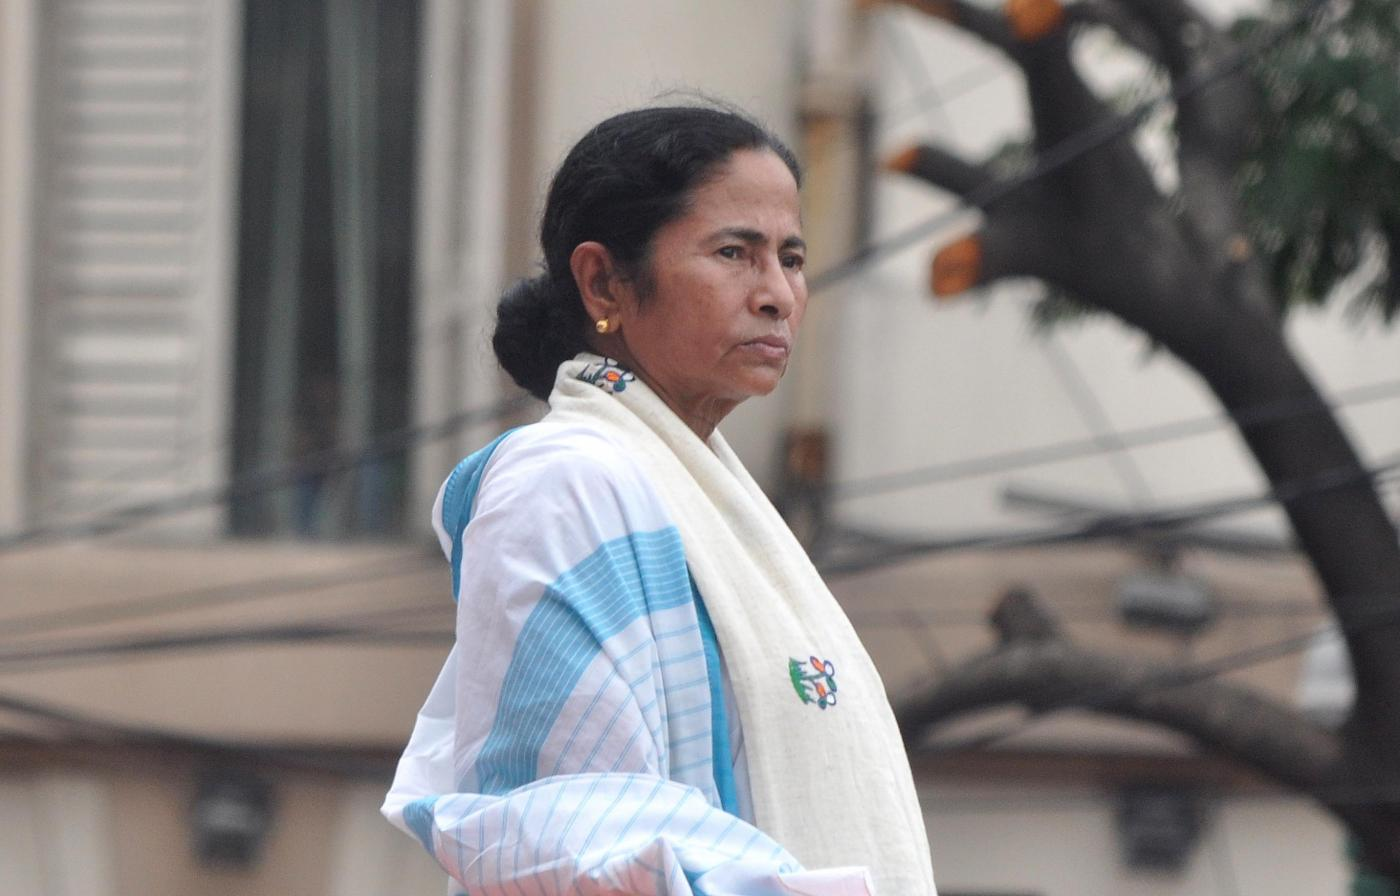 West Bengal Chief Minister and Trinamool Congress supremo Mamata Banerjee. (File Photo: IANS) by .